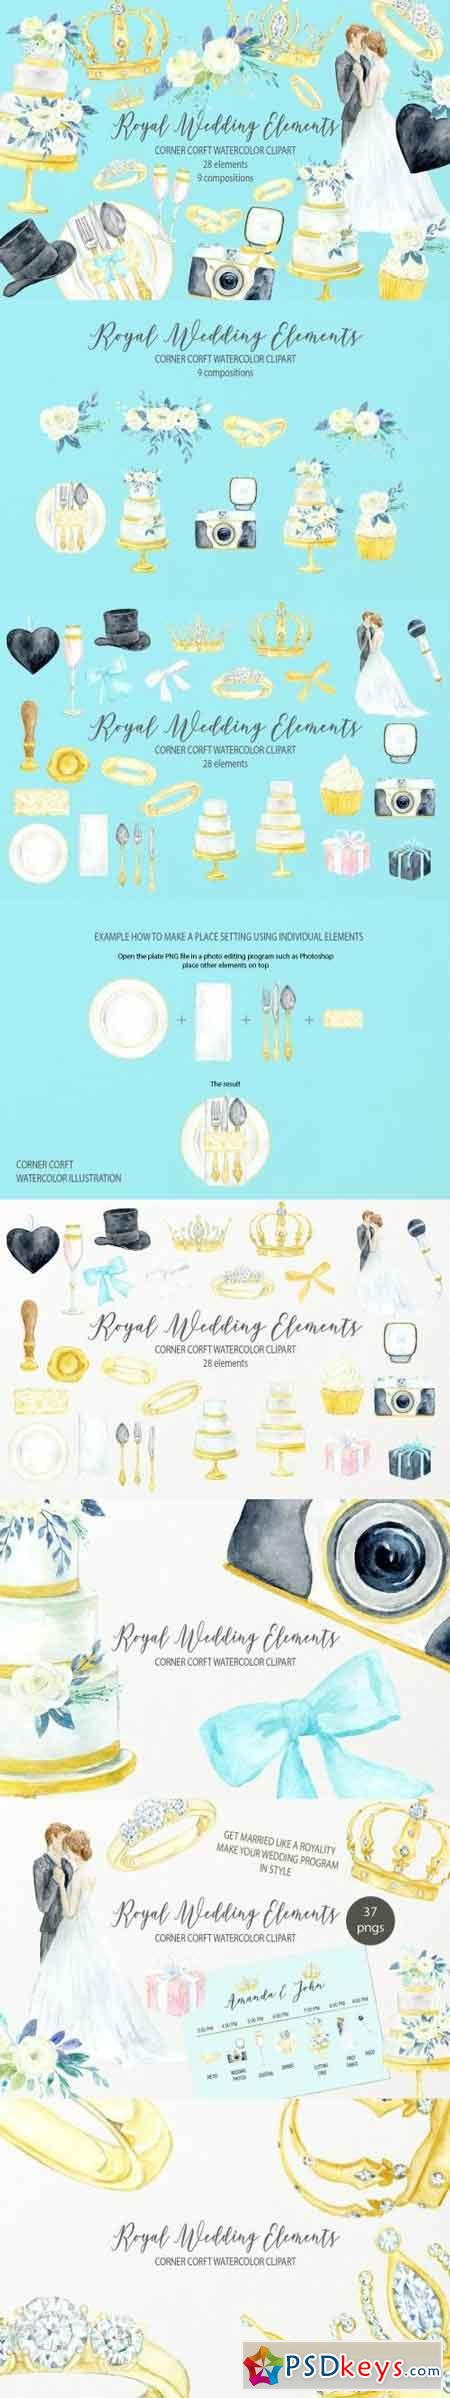 Watercolor royal wedding elements